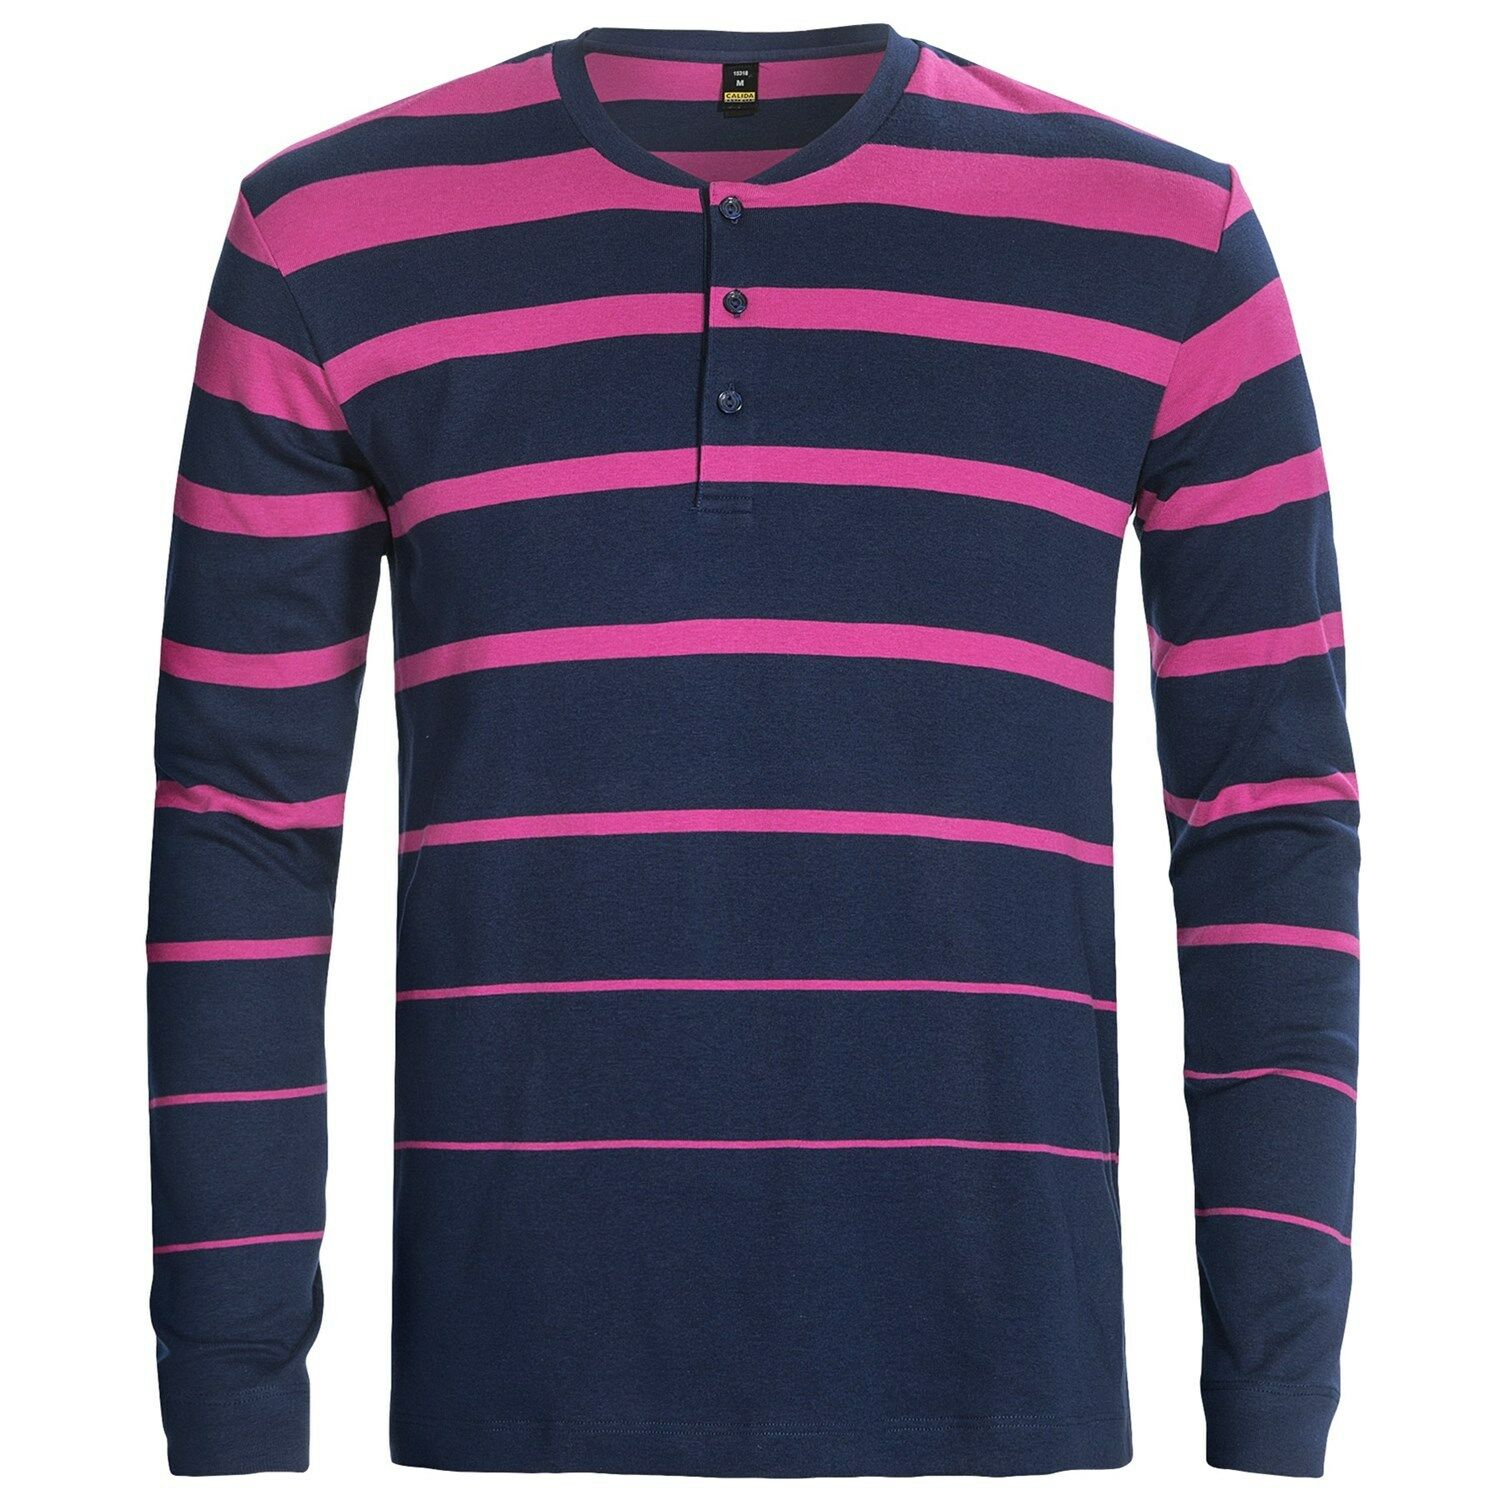 Calida Body Wear - Men's S - NIP - Pink & bluee Striped Cotton L S Henley Shirt